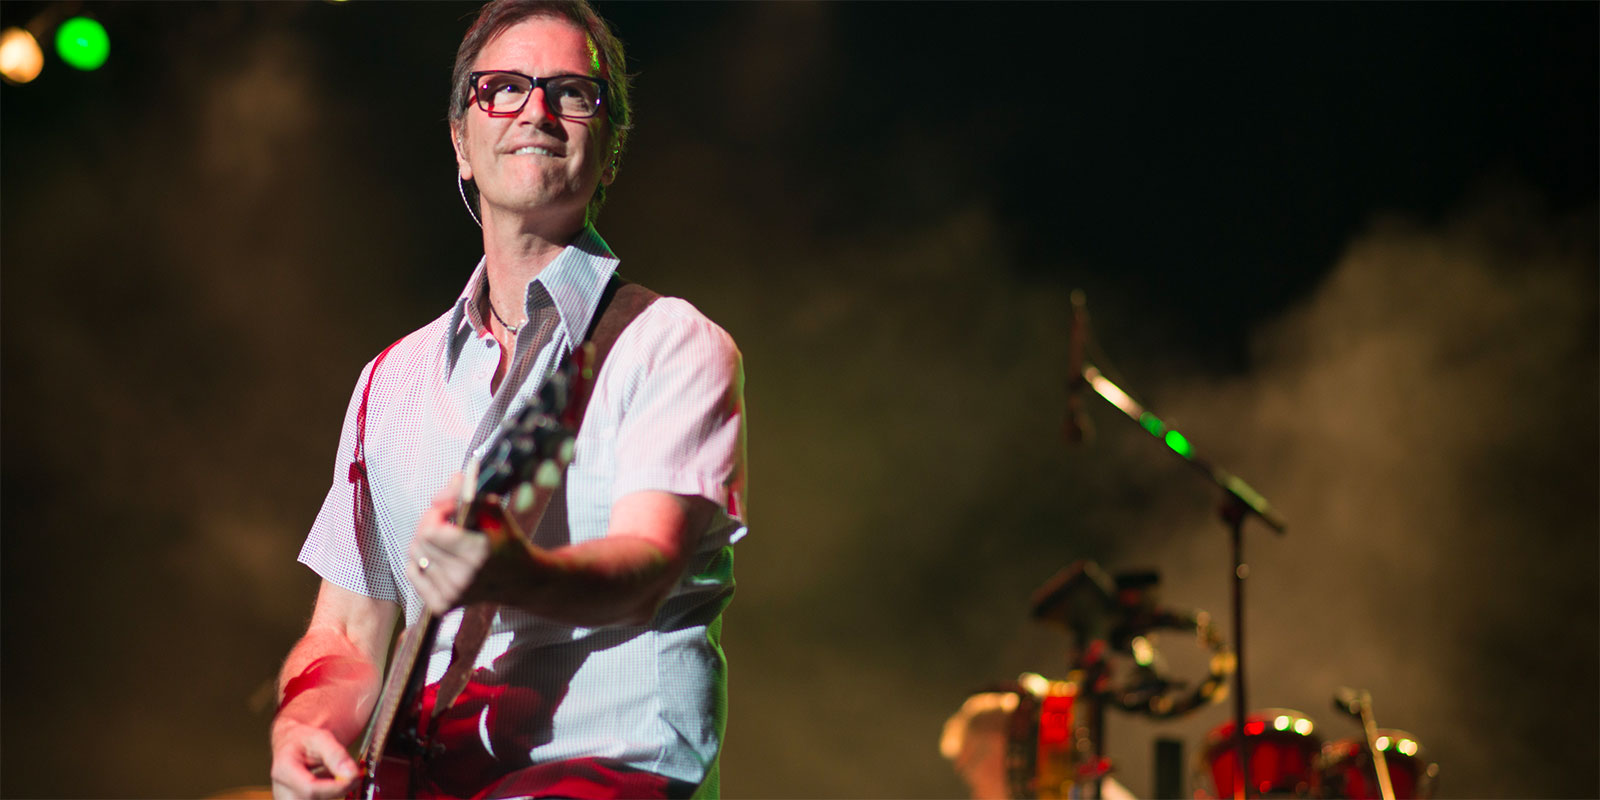 Closing Time by Semisonic Is About Childbirth, Not Last Call at a Bar?